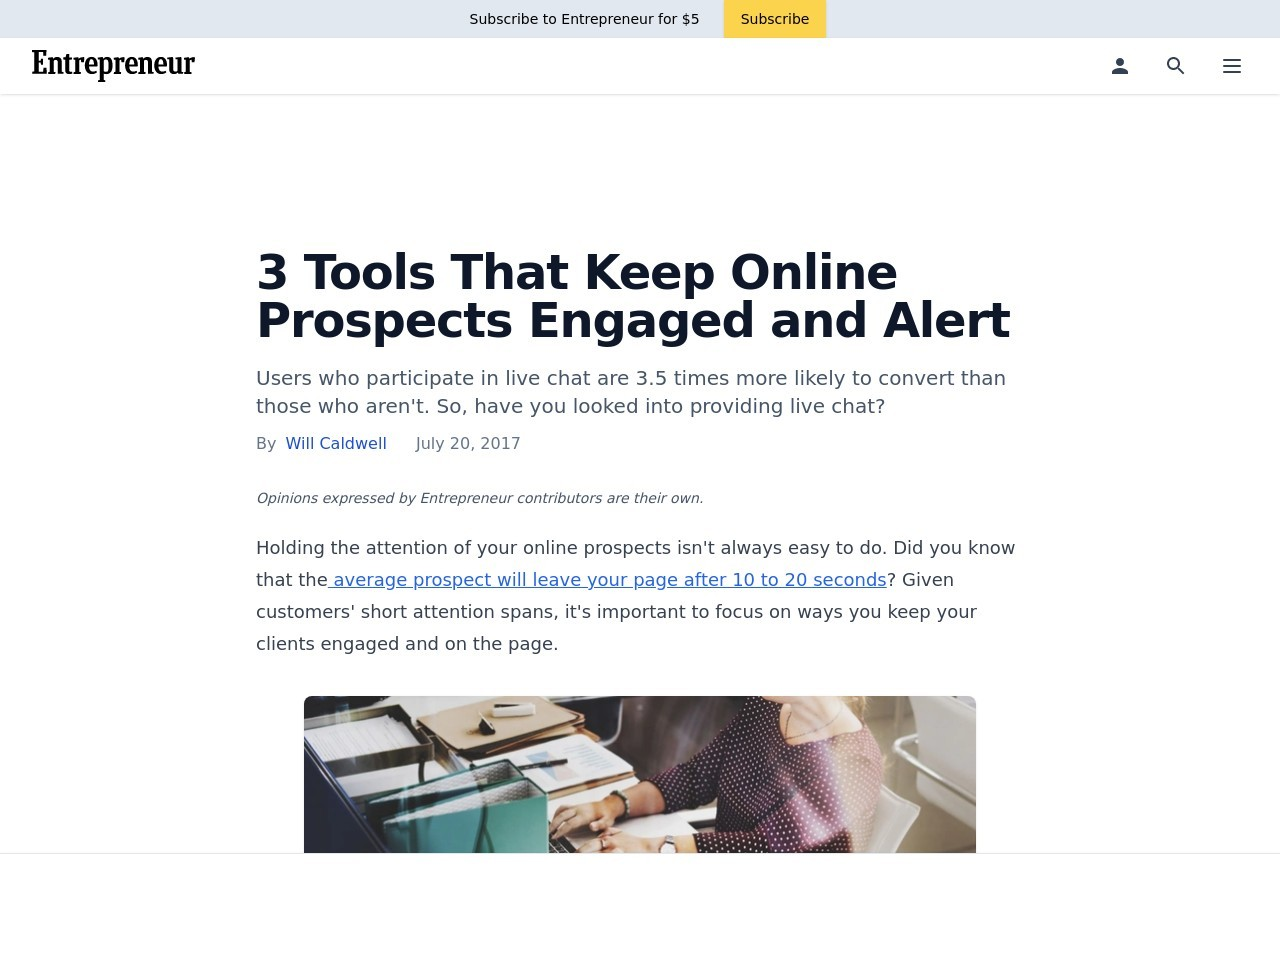 3 Tools That Keep Online Prospects Engaged and Alert